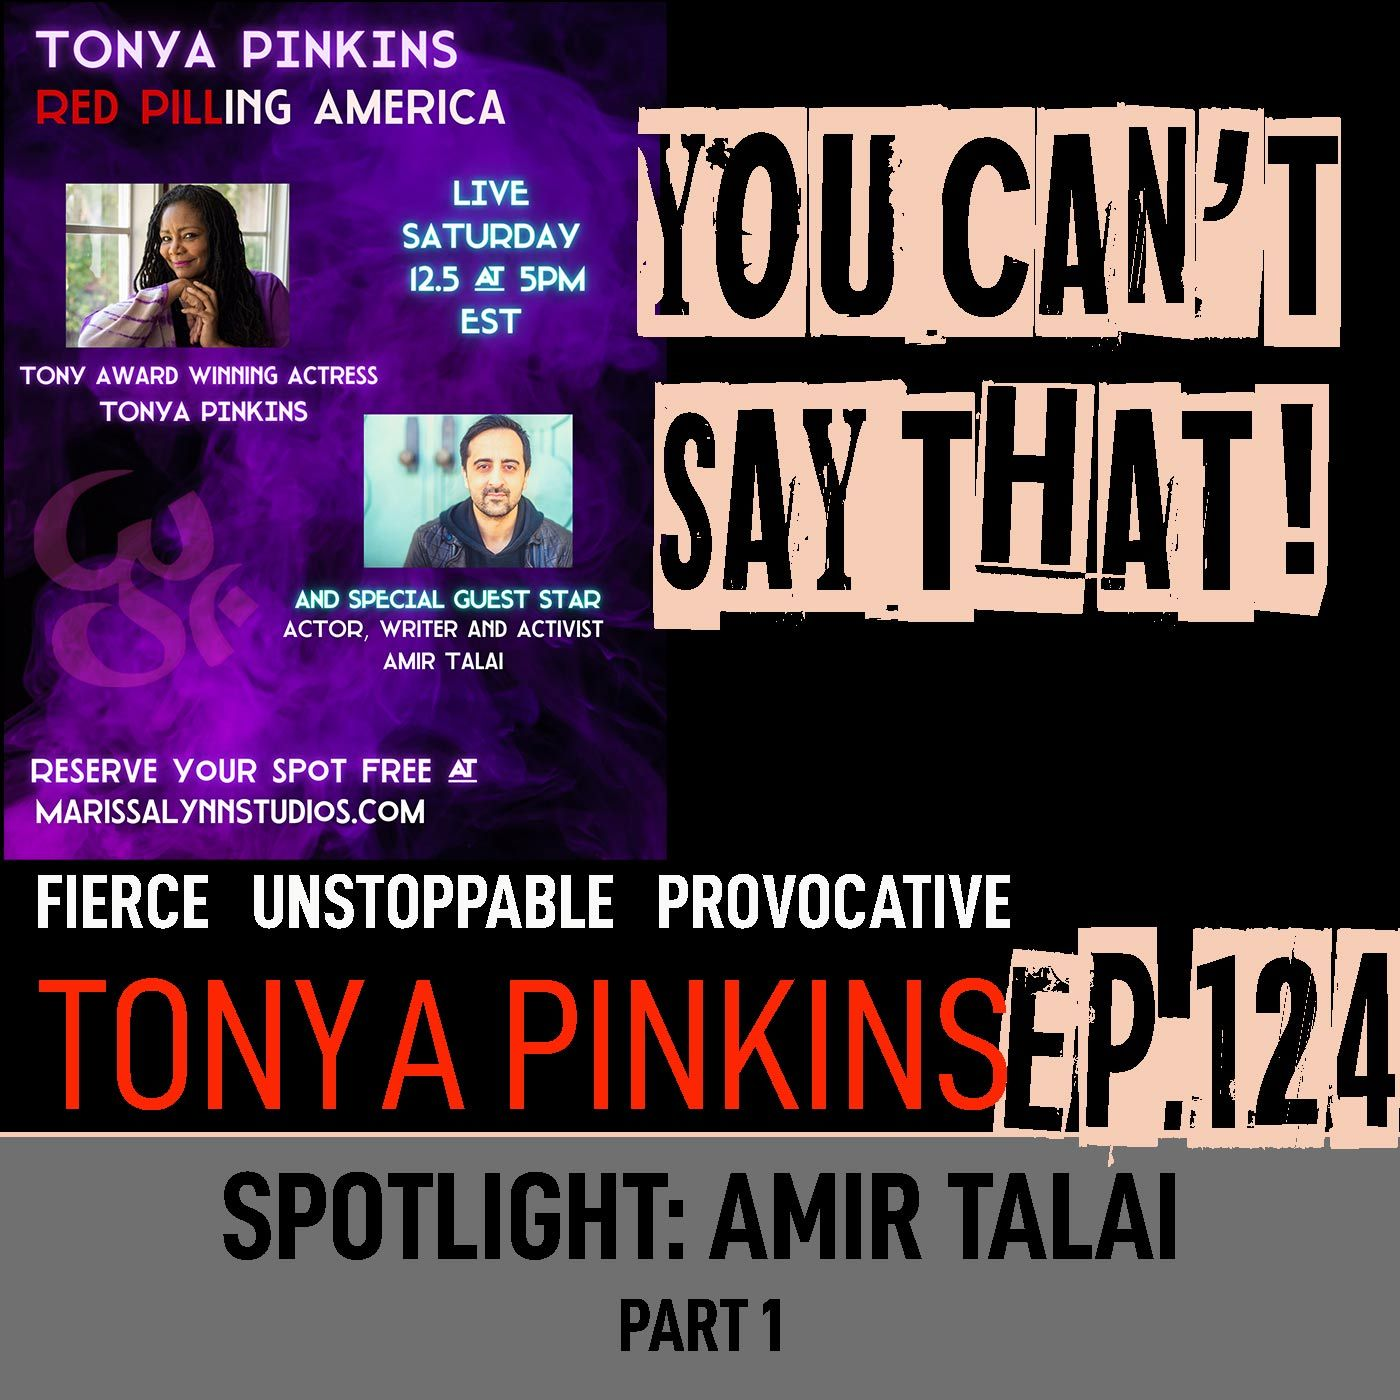 Ep124 - SPOTLIGHT: Red Pilling America with with Amir Talai (Part 1)